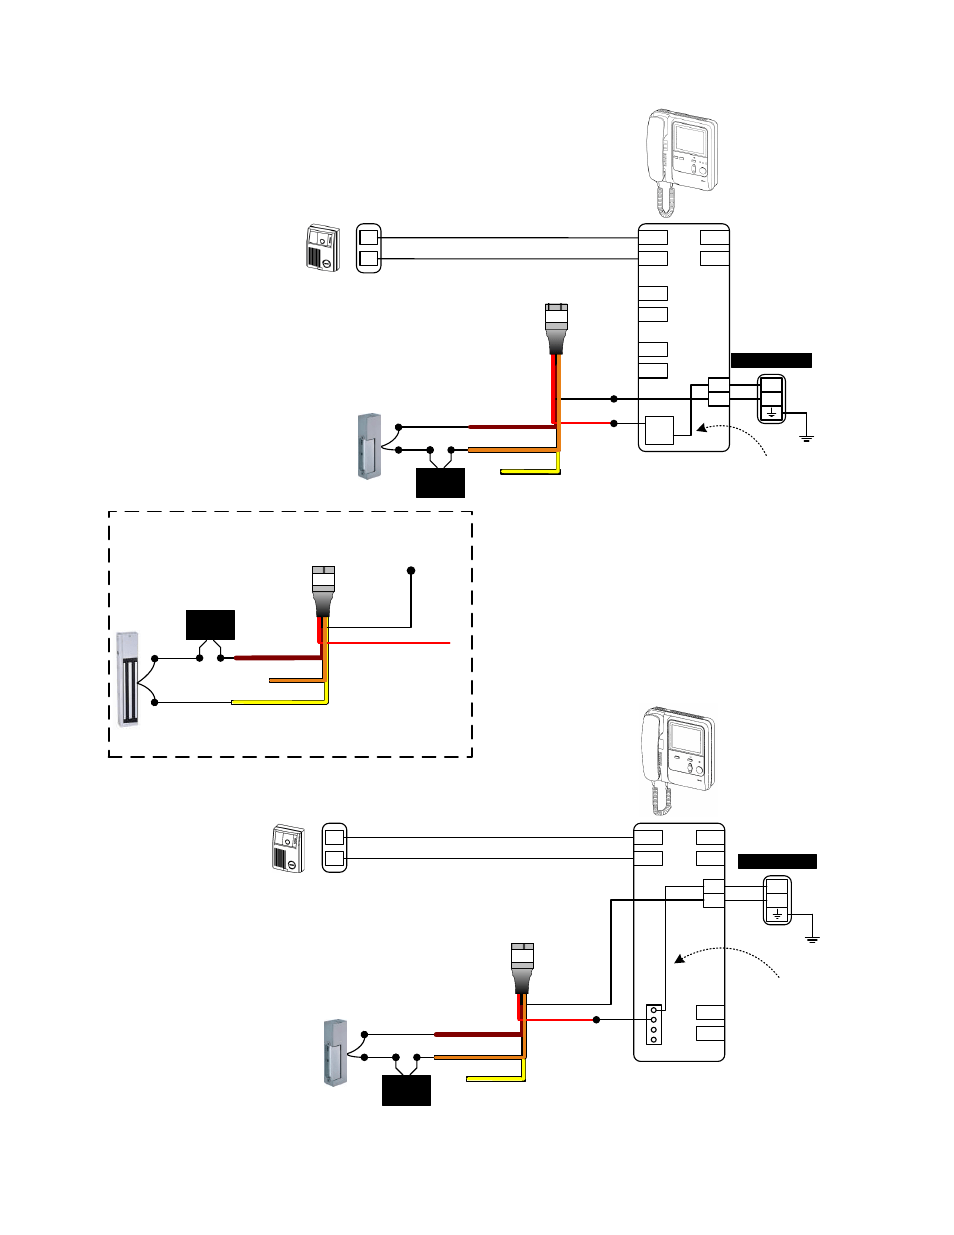 aiphone door release relay module ry 24l page2?resize\=665%2C861 wiring diagram hid edge solo 5 pin relay wiring diagram, led von duprin wiring diagram at couponss.co